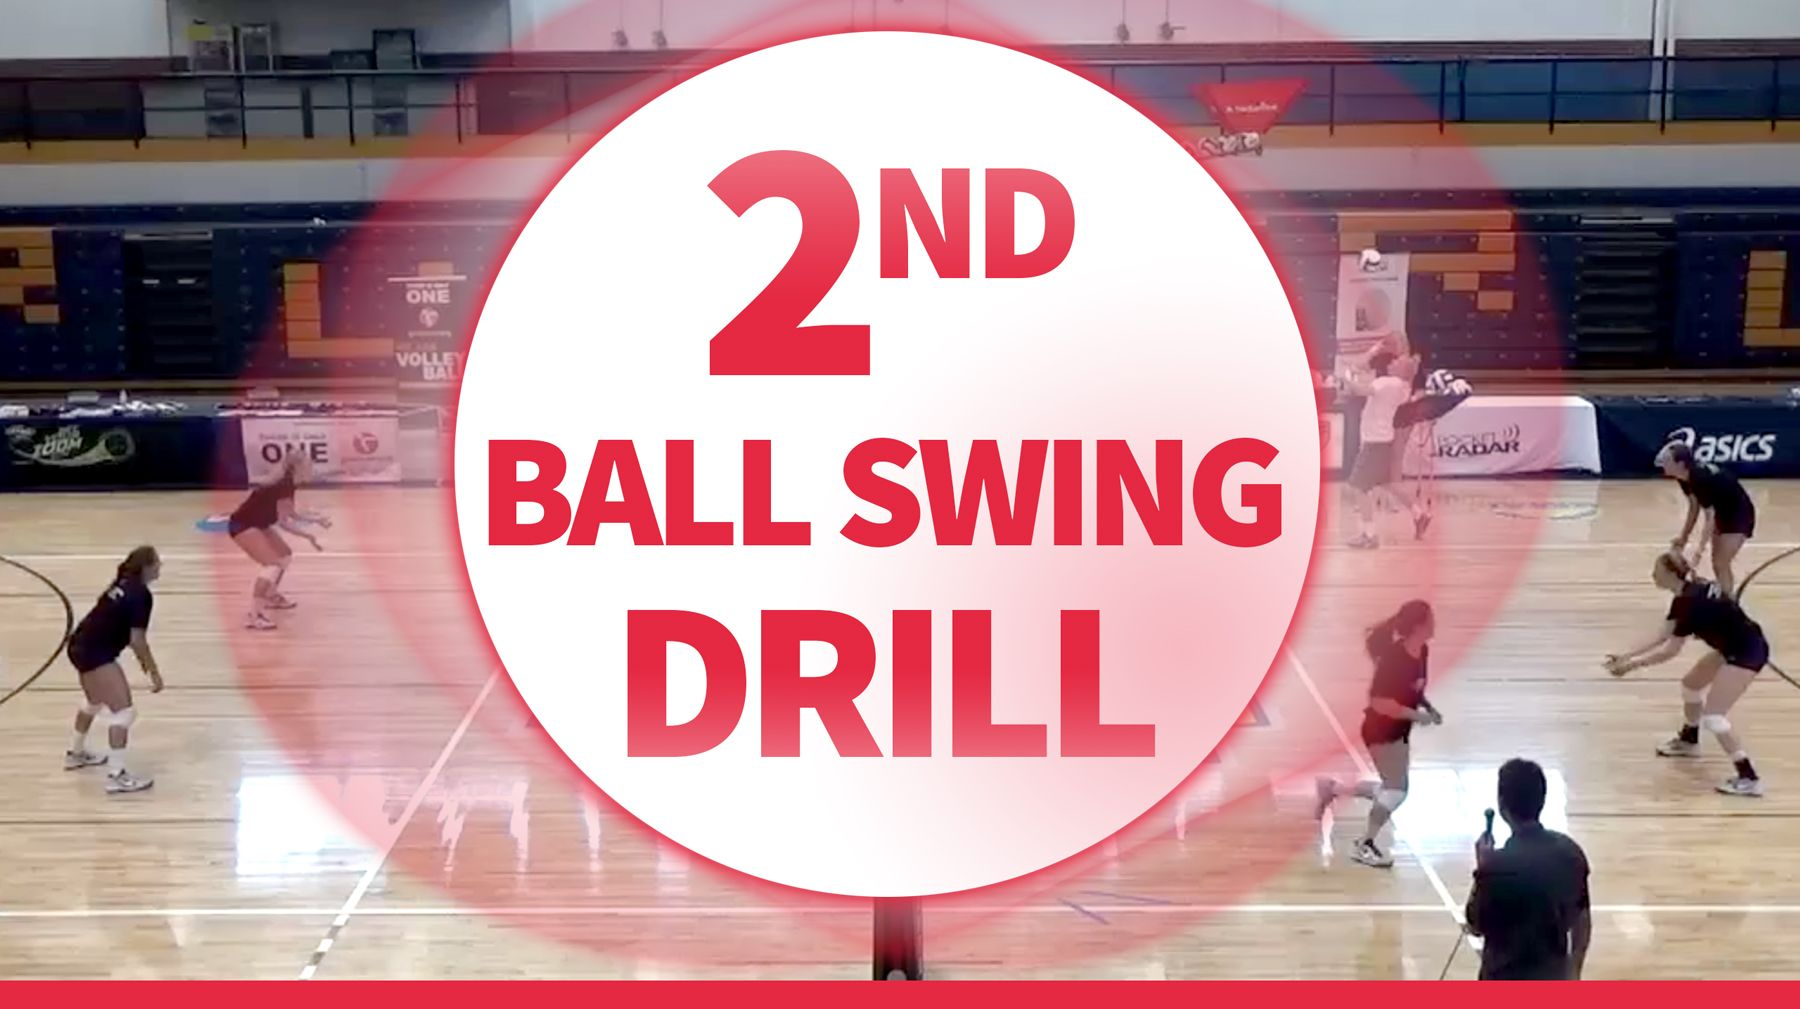 Second Ball Swing Drill Coaching Volleyball Volleyball Conditioning Volleyball Practice